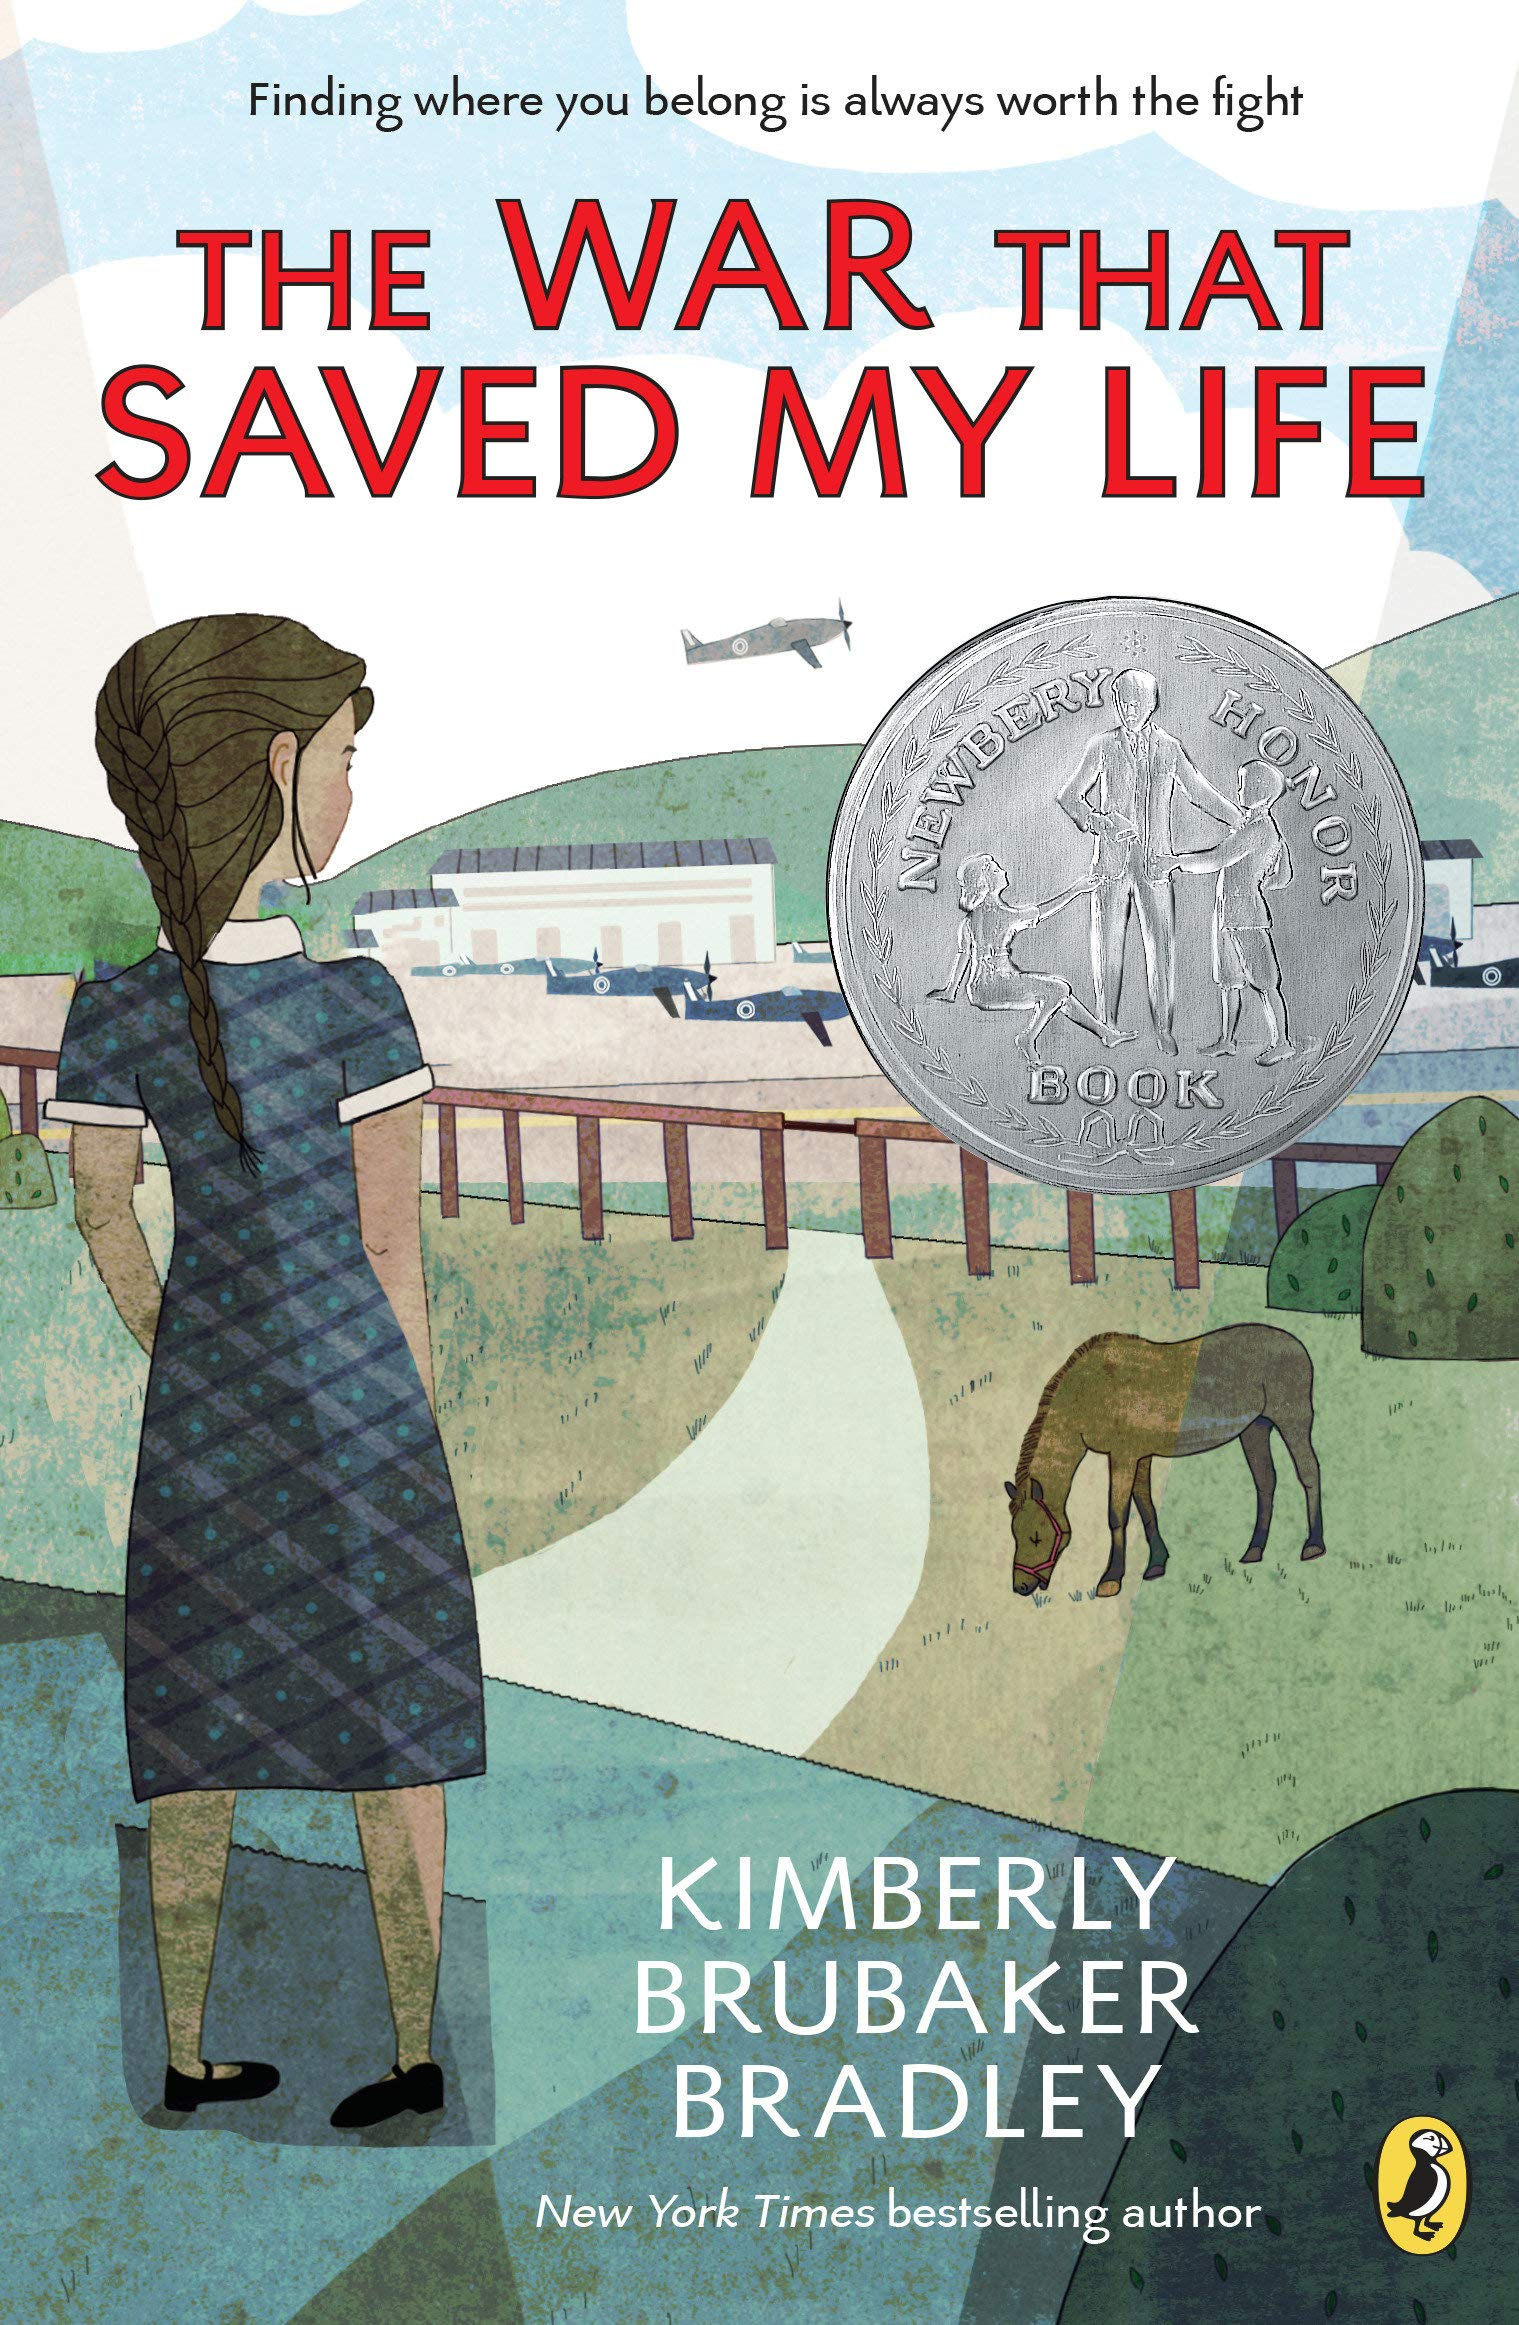 Buy The War That Saved My Life Book Online at Low Prices in India | The War  That Saved My Life Reviews & Ratings - Amazon.in